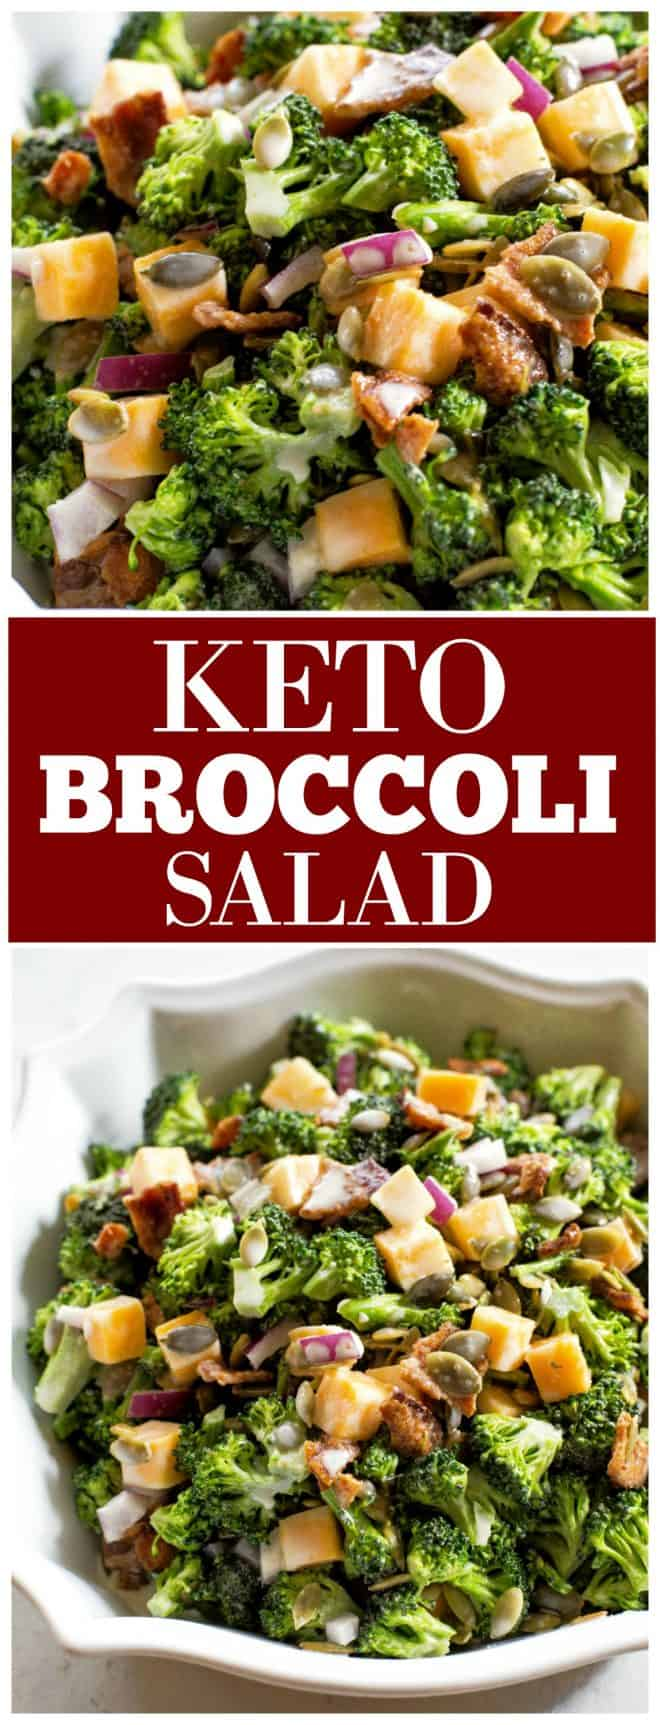 Keto Broccoli Salad The Girl Who Ate Everything